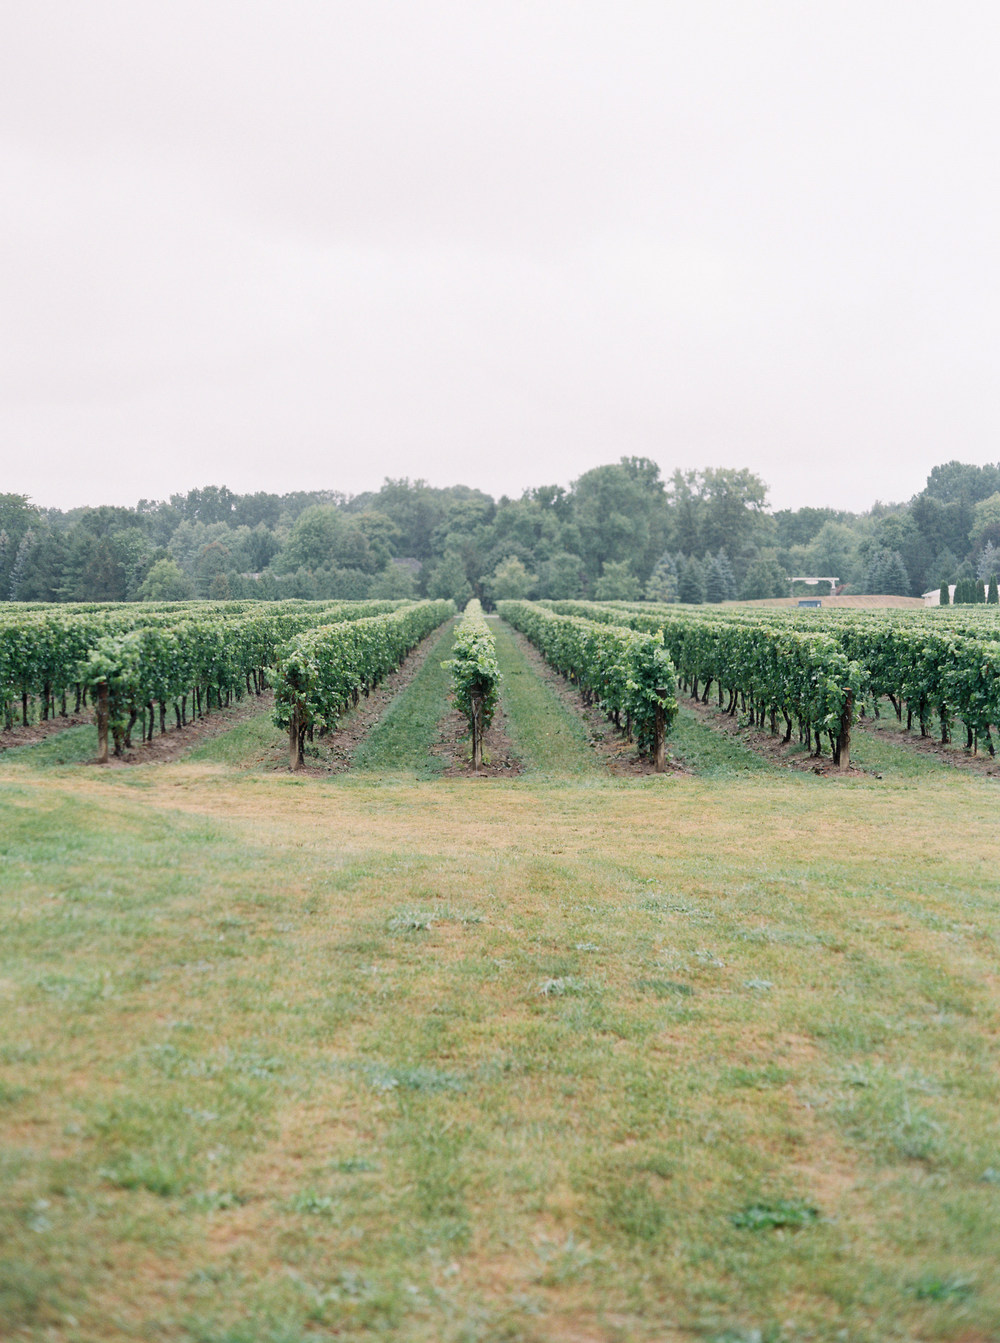 Kurtz-Orchards-Niagara-on-the-Lake-Wedding-photography-by-When-He-Found-Her-041.JPG